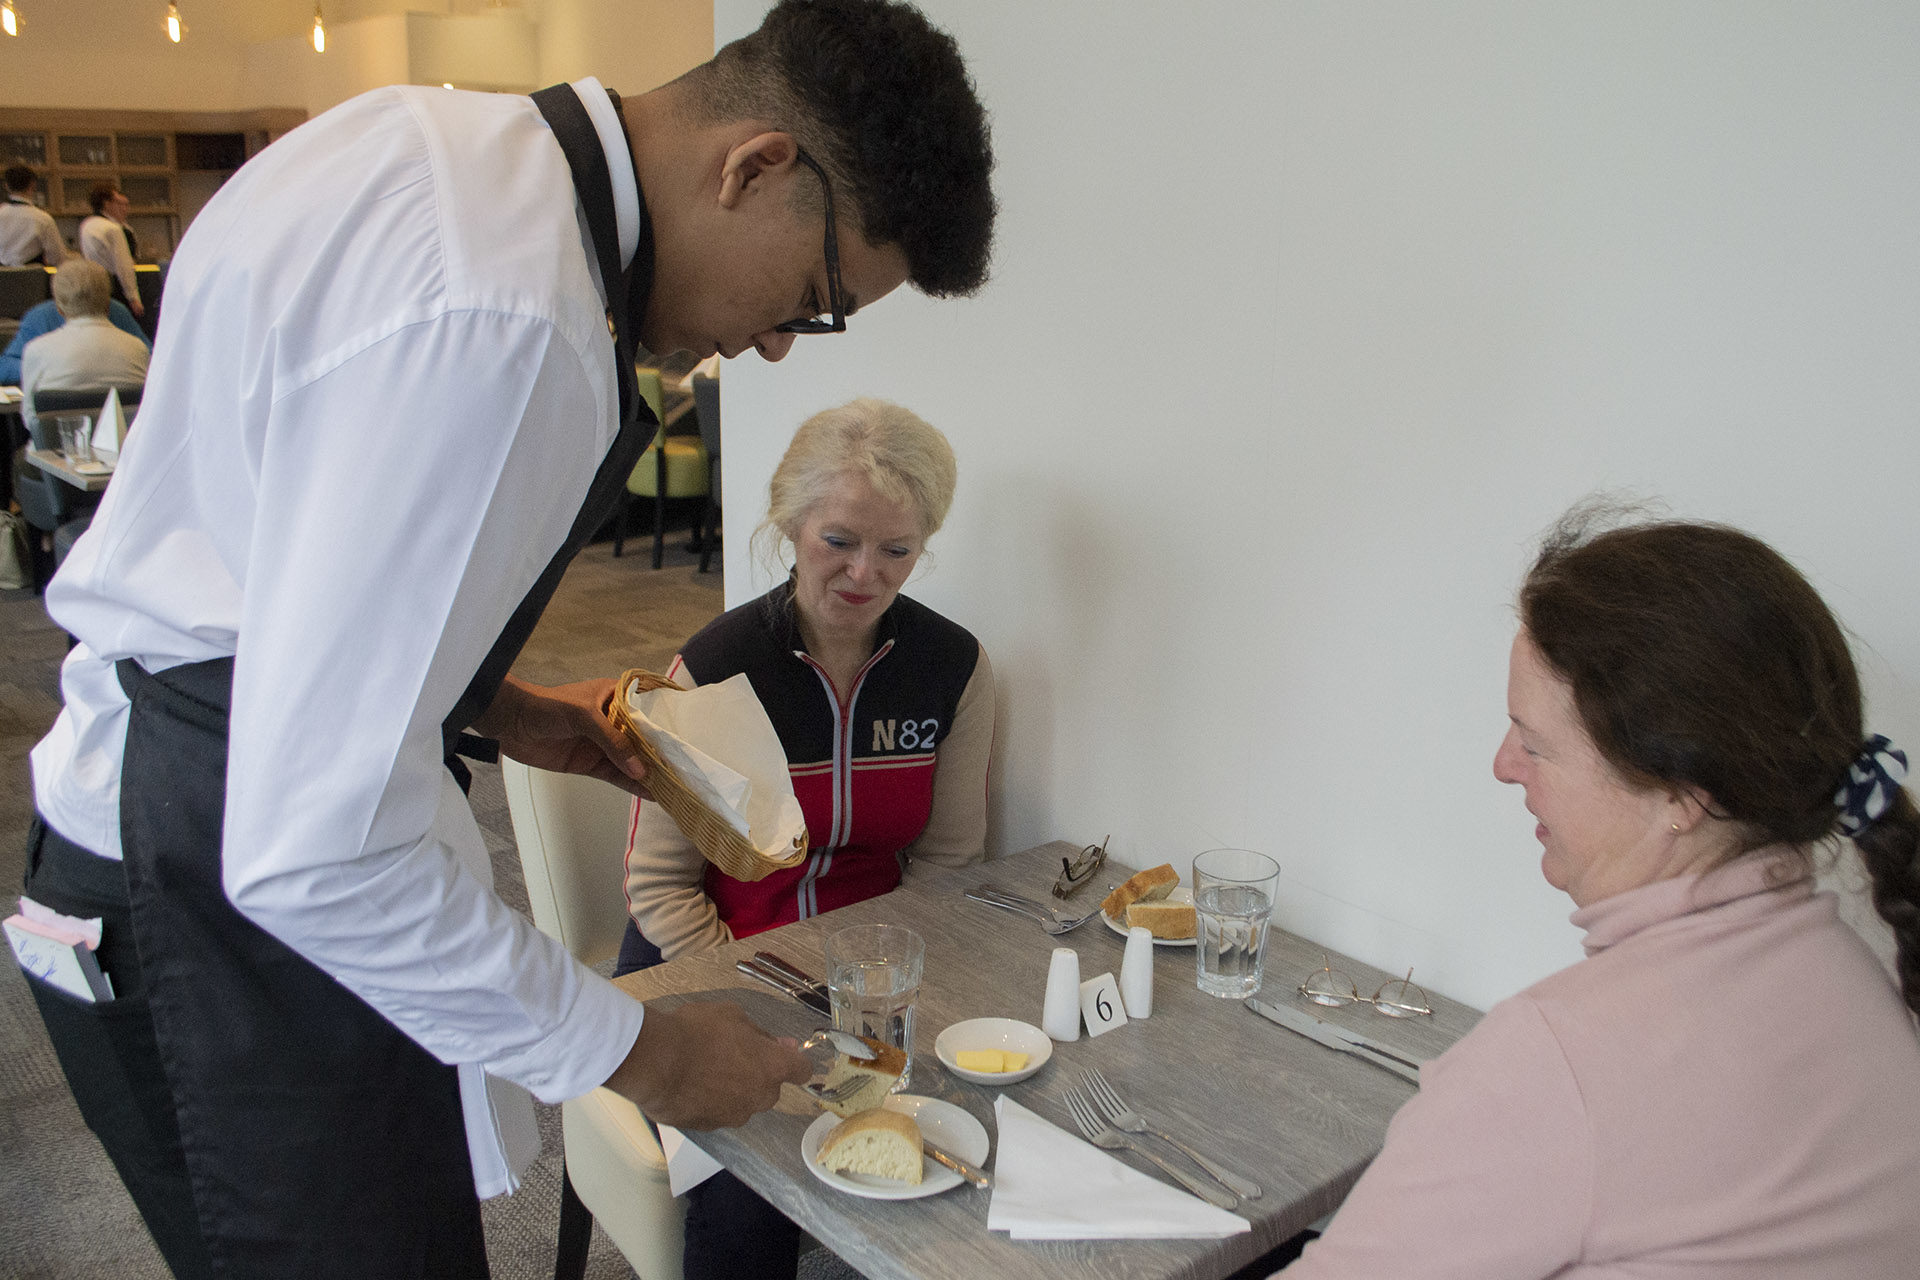 Hospitality - Student serving food